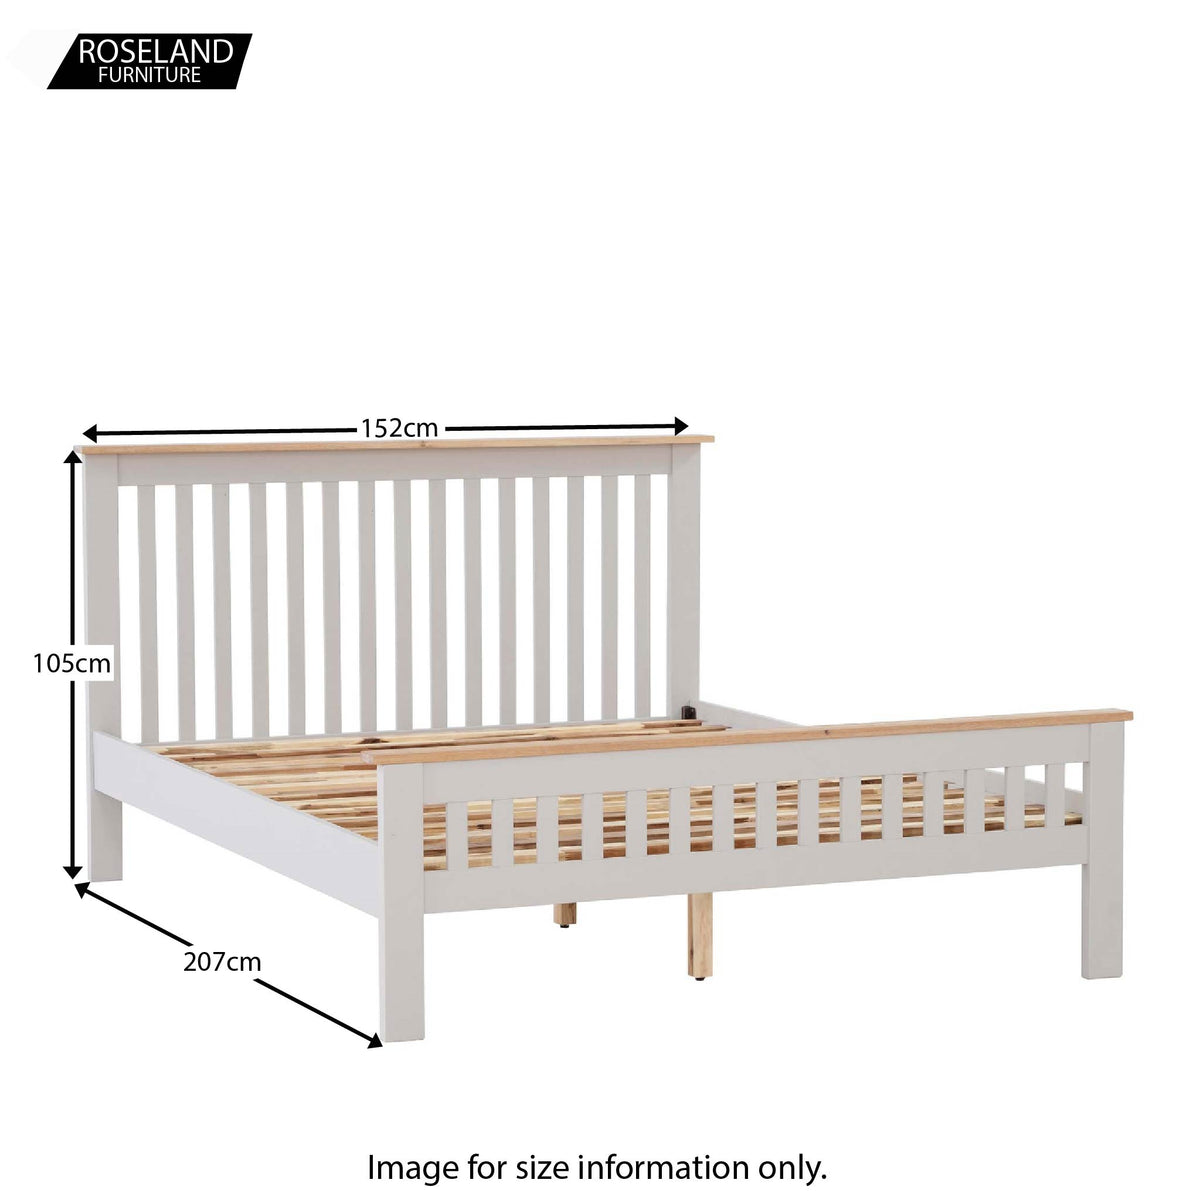 Dimensions for Charlestown Grey Solid Wood 4 ft 6 Double Bed Frame